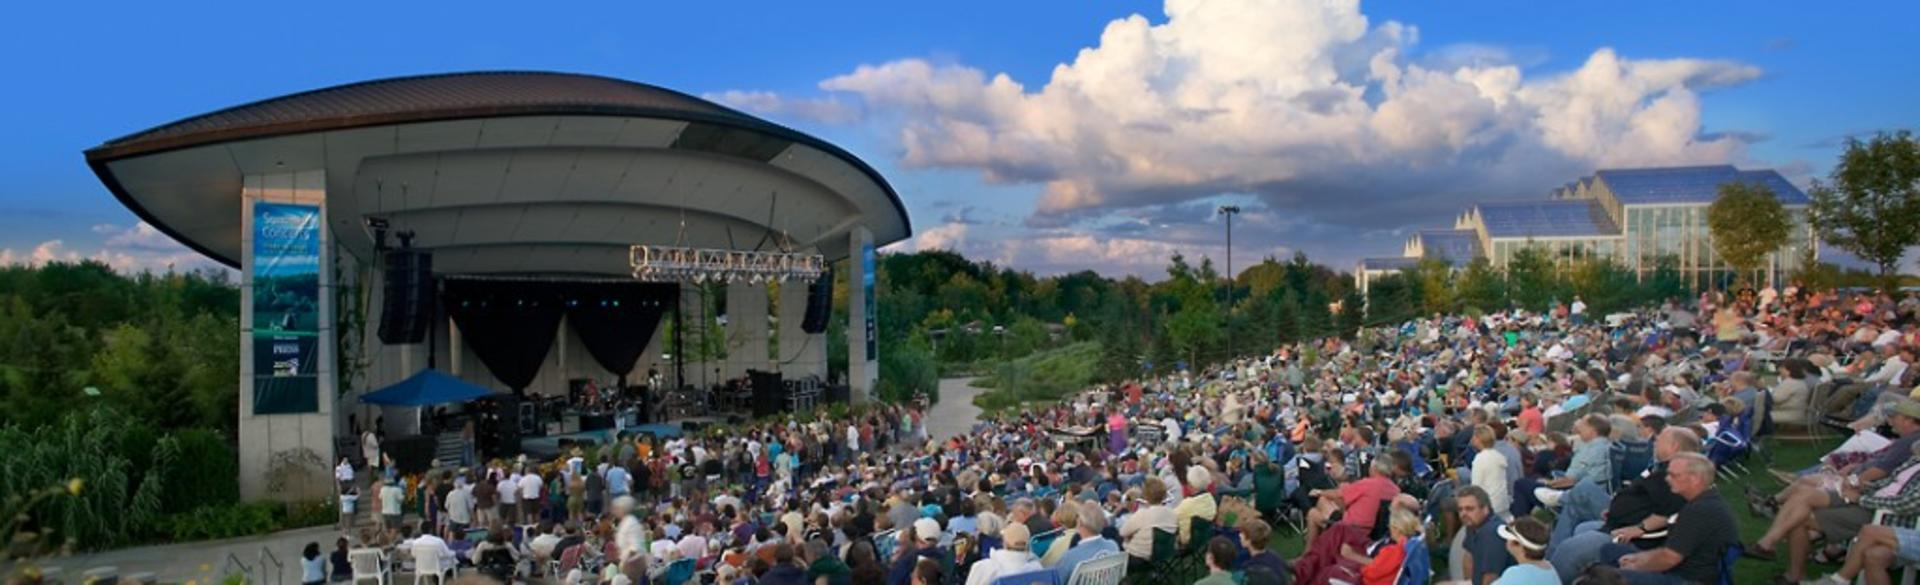 Summer Concert Series at Meijer Gardens Crowds